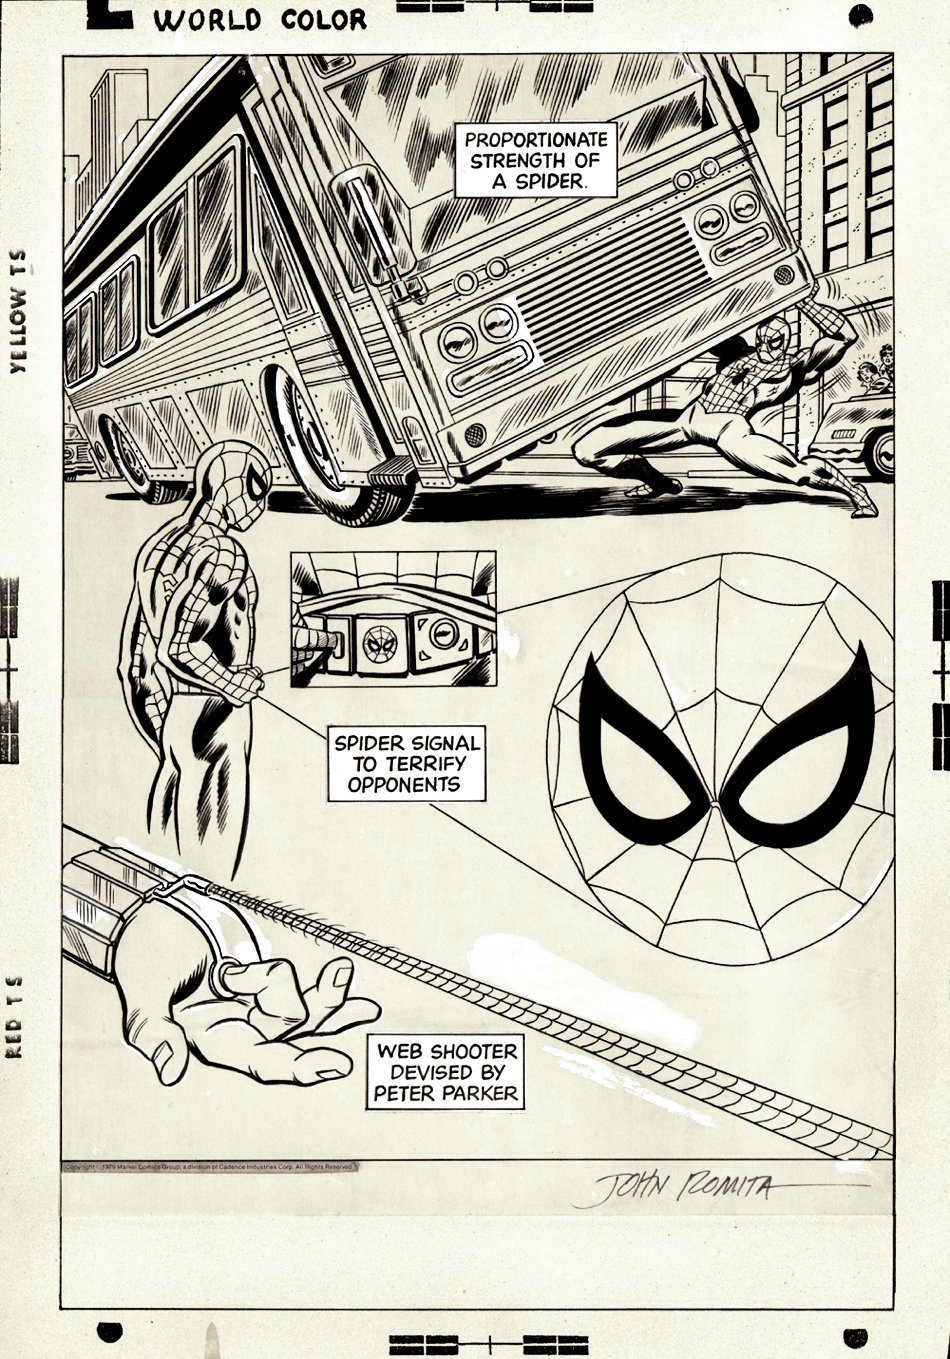 Amazing Spiderman 1970s Syndicated Newspaper Strip Header Art